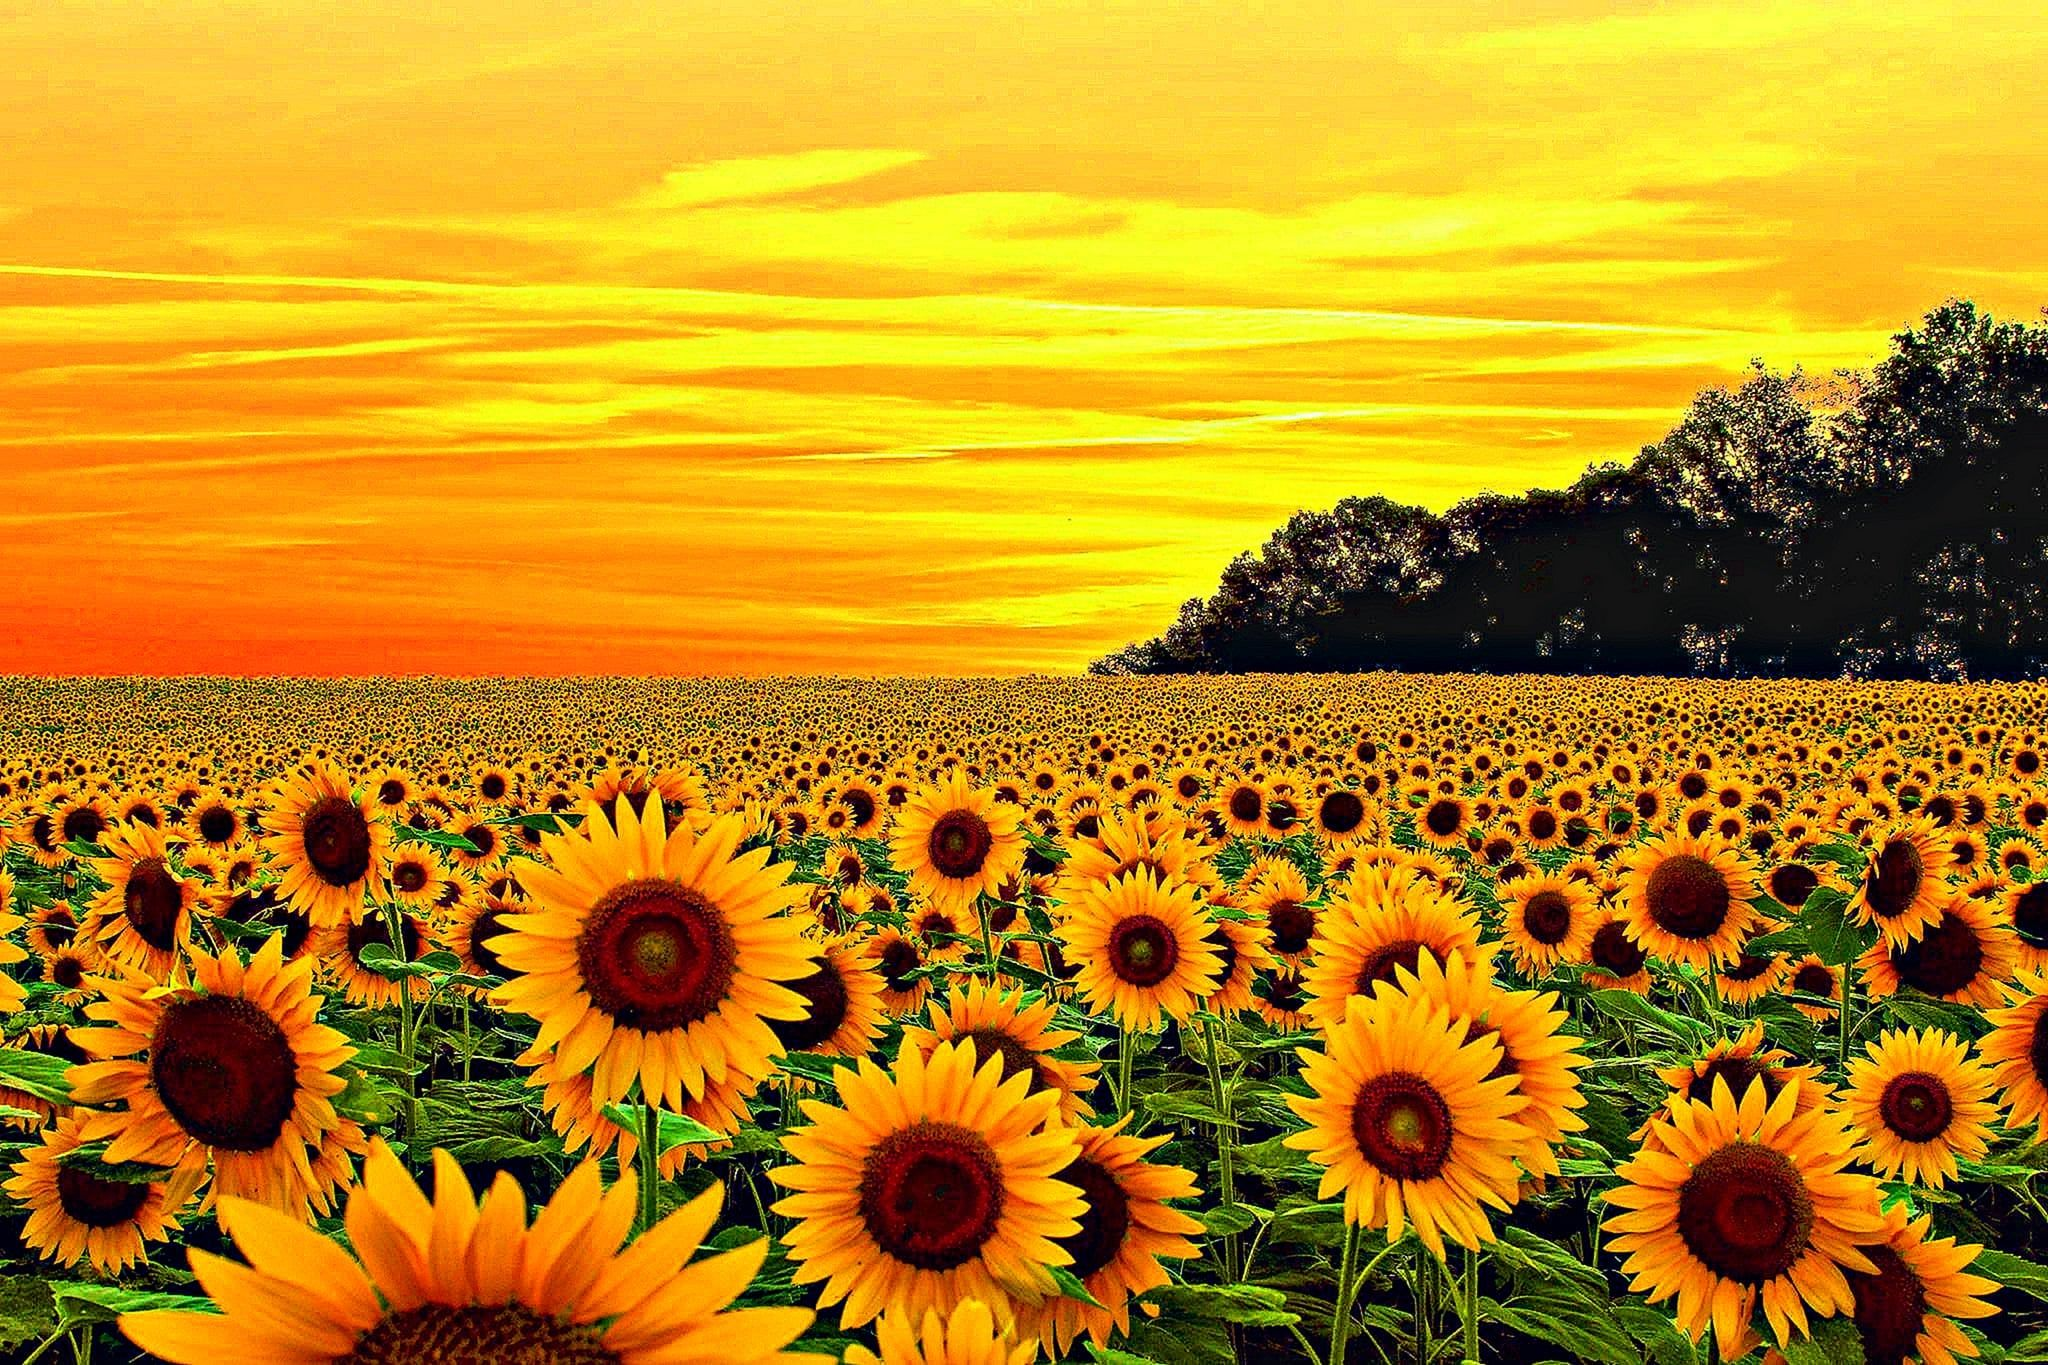 Yellow Aesthetic Sunflower Wallpapers - Wallpaper Cave